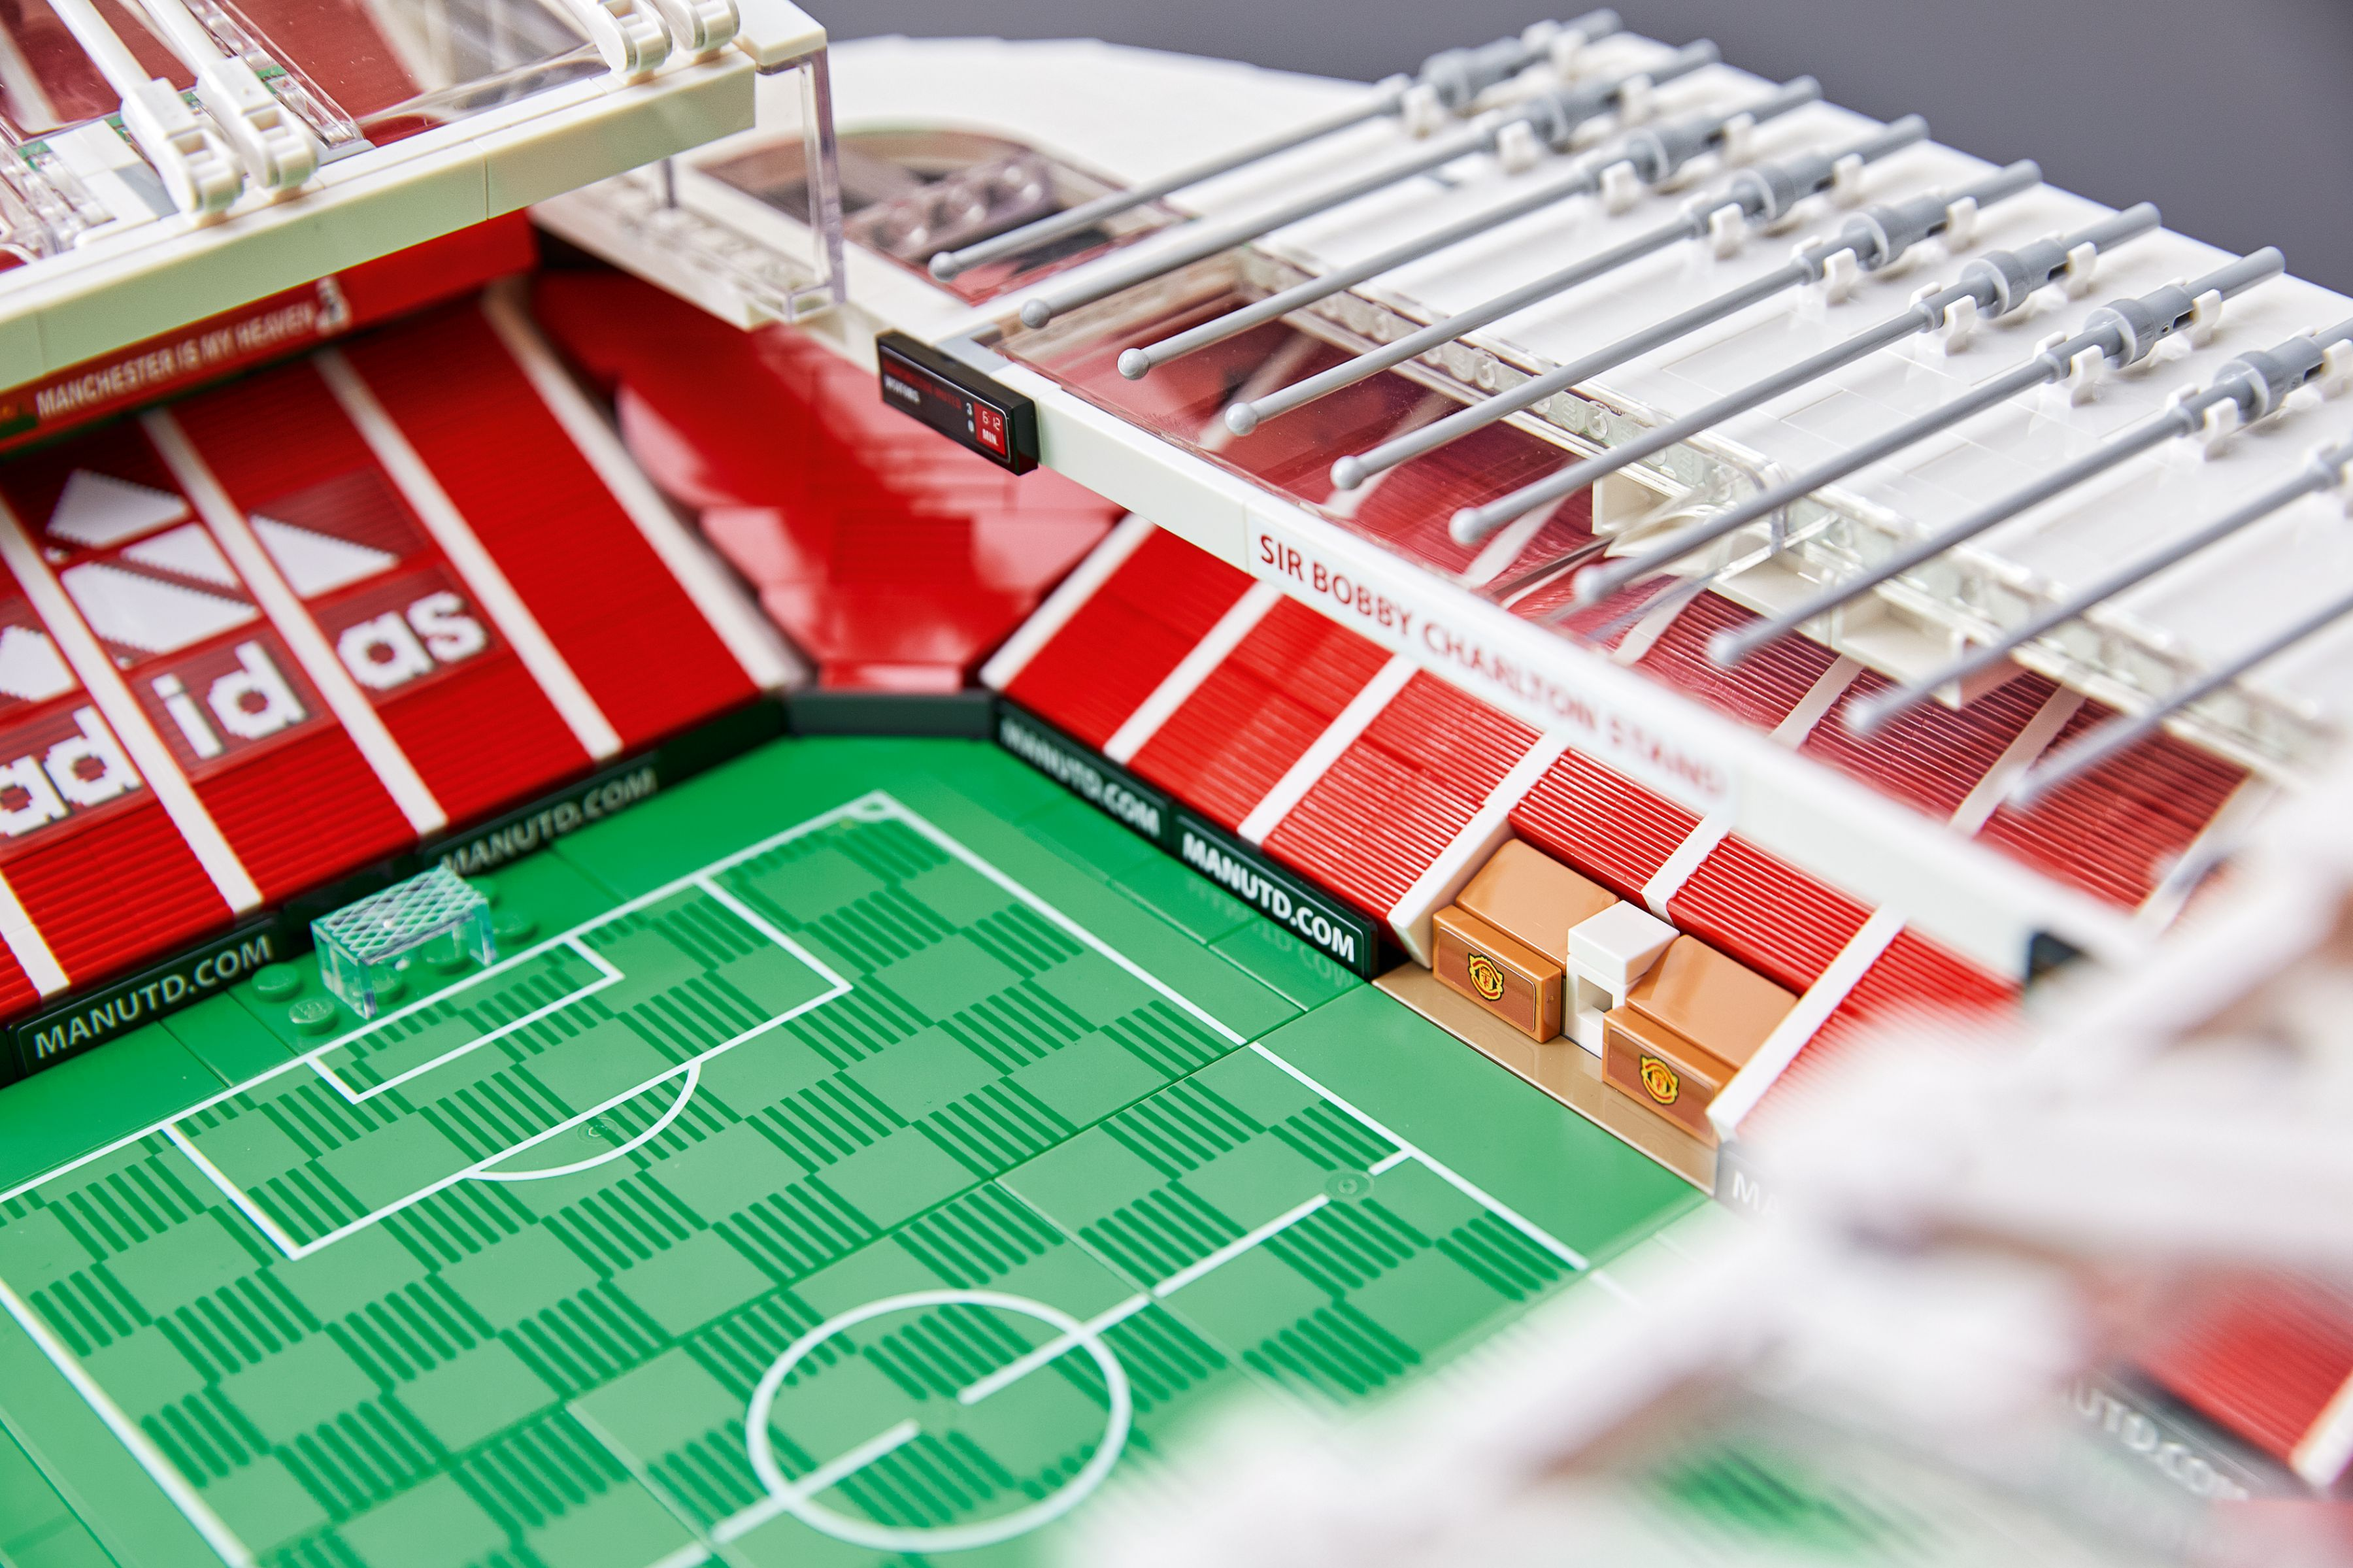 LEGO Advanced Models 10272 Old Trafford - Manchester United LEGO_10272_alt3.jpg